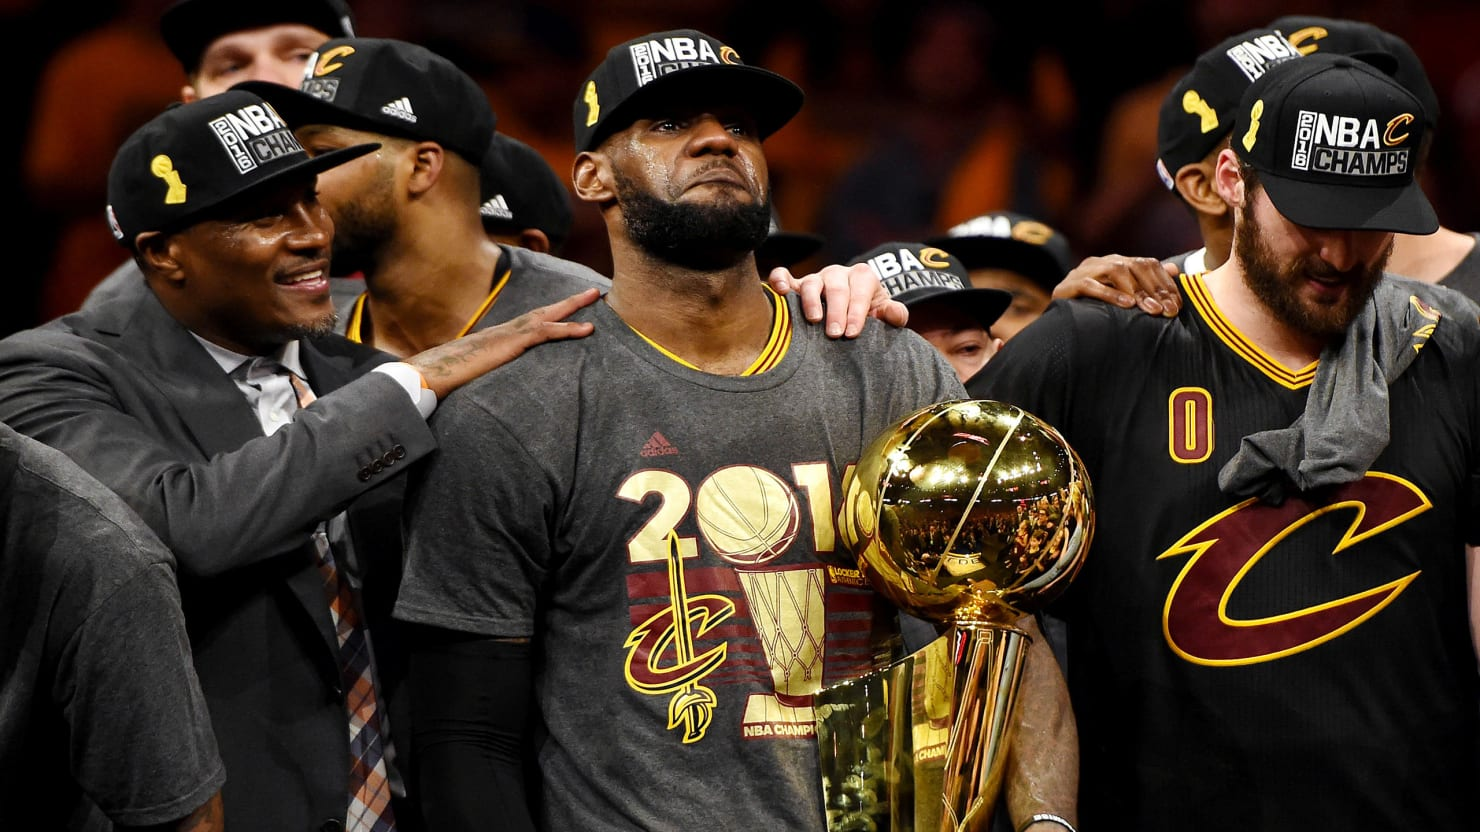 All Hail King James Or How I Learned To Stop Worrying And